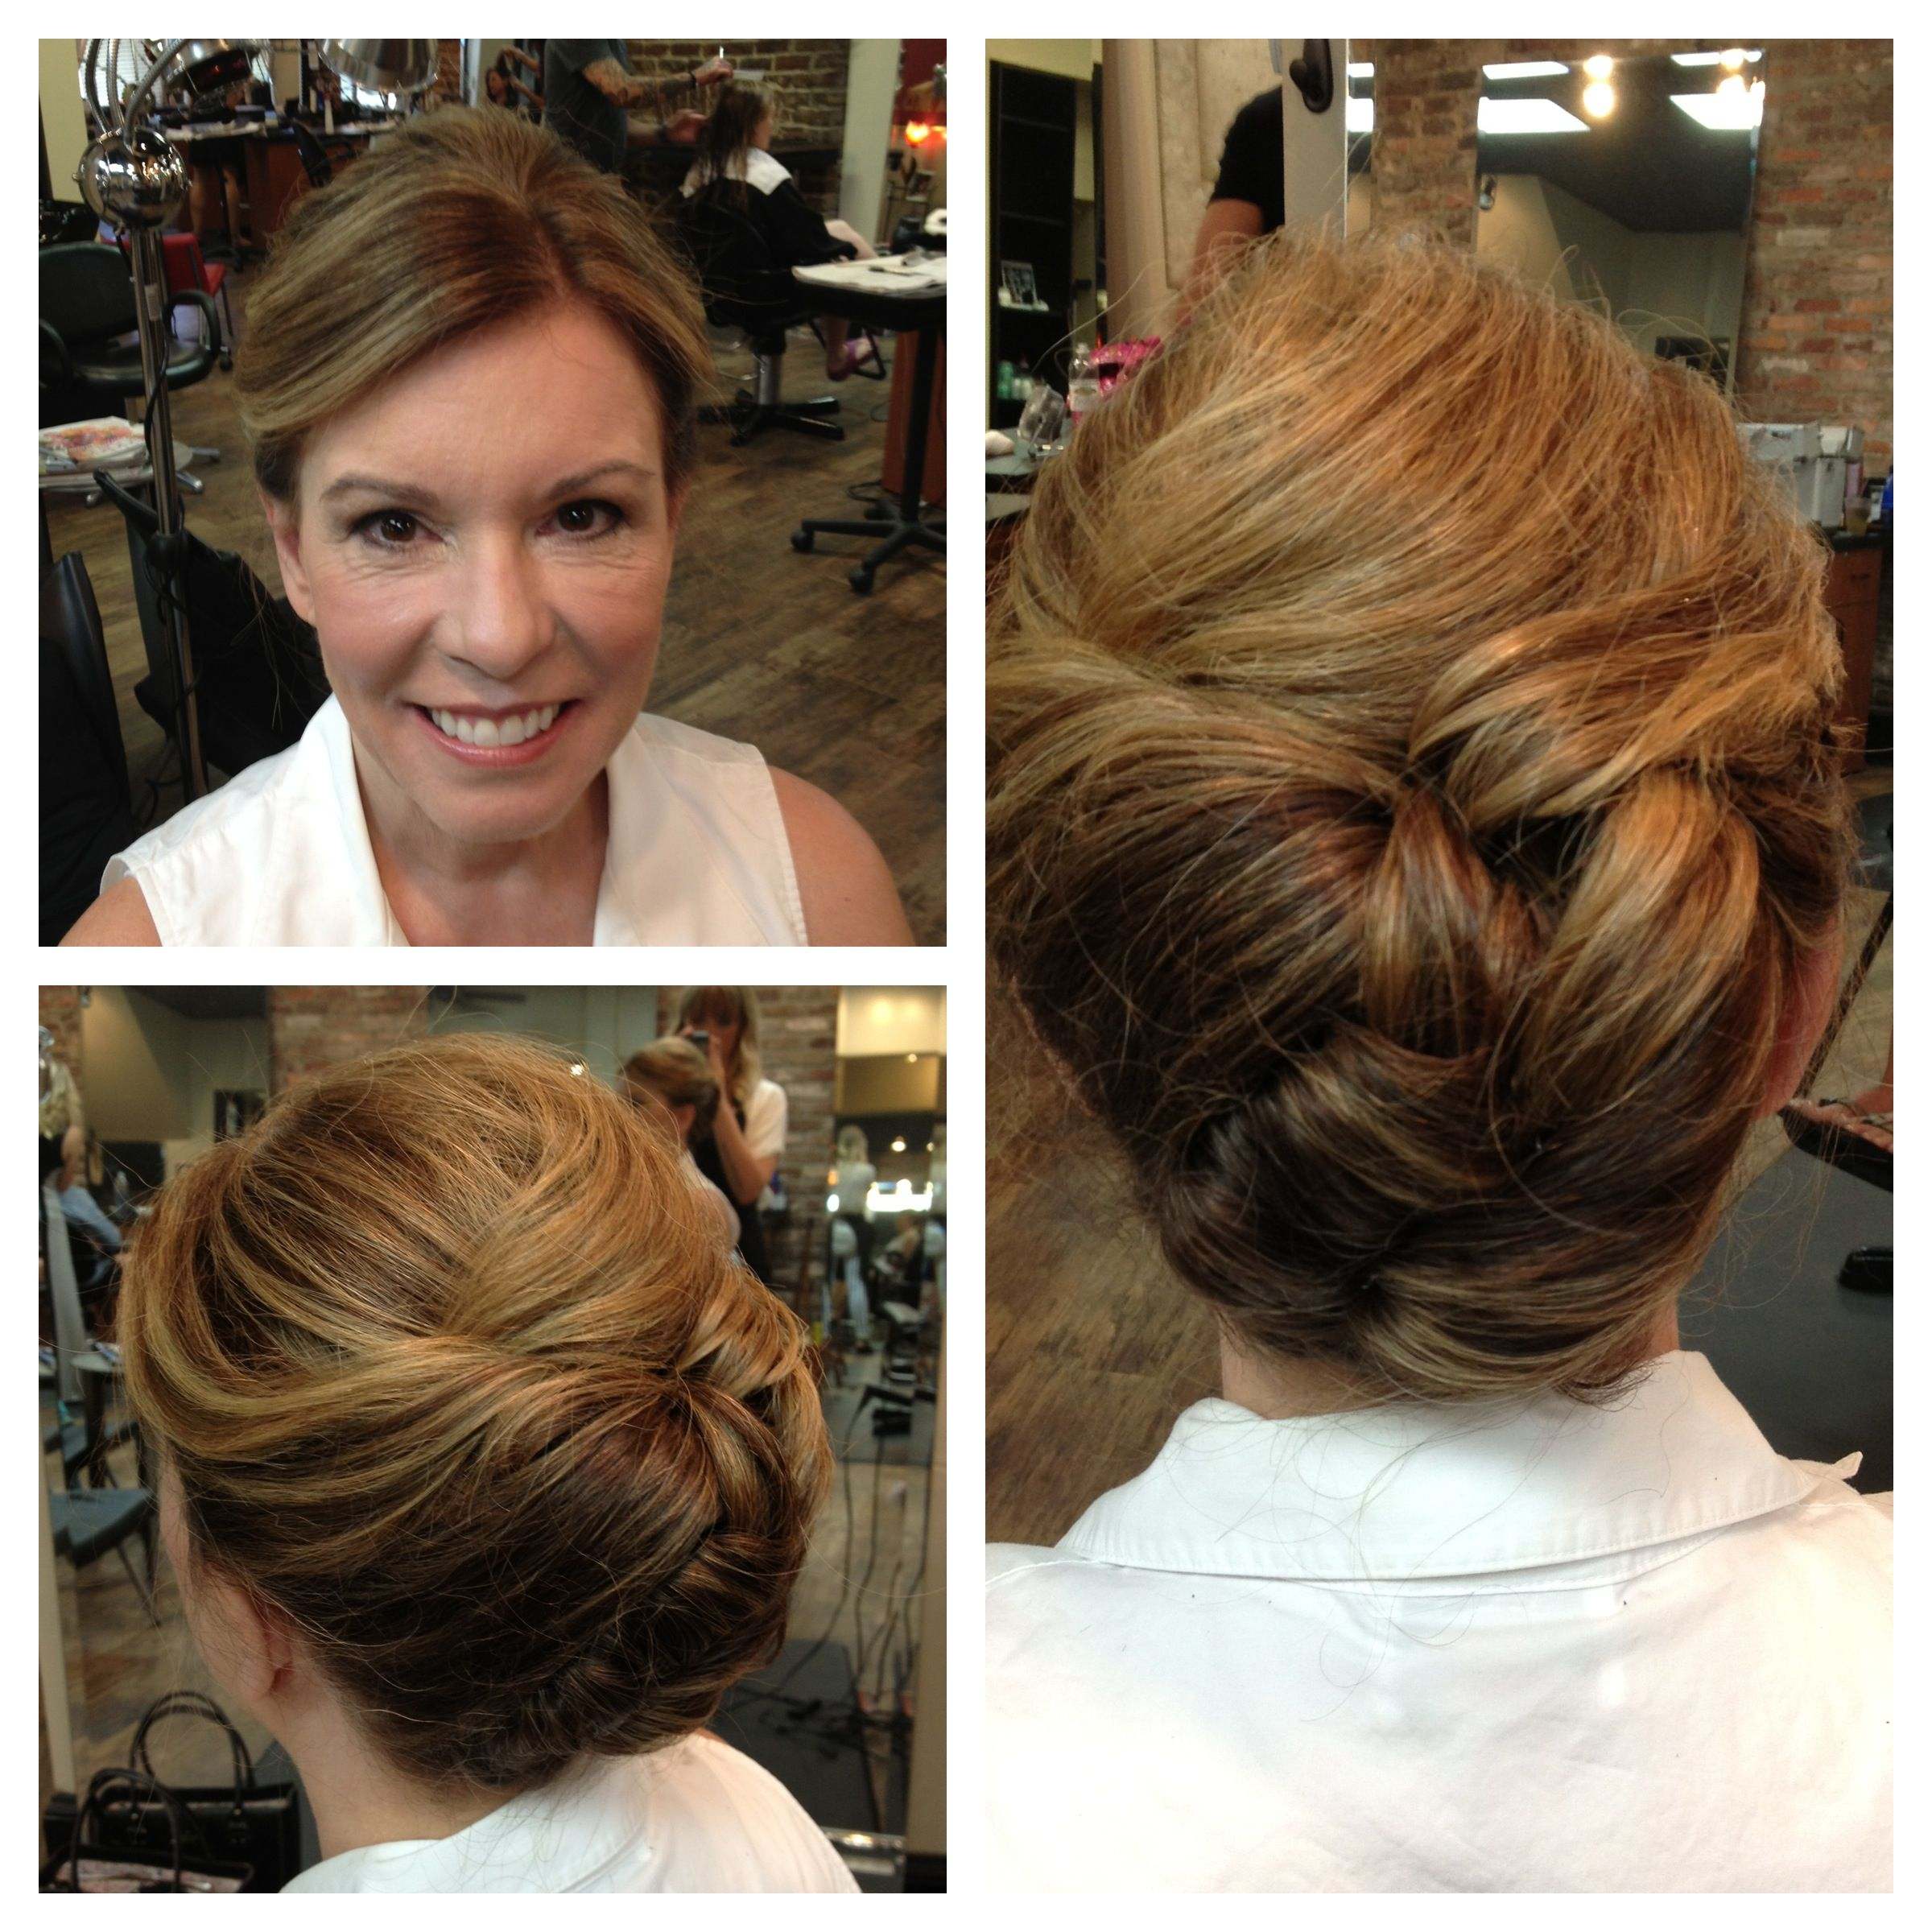 Wedding Hairstyles Mother Of The Groom: Updo, Mother Of The Bride, Wedding Hair. This Was A Great